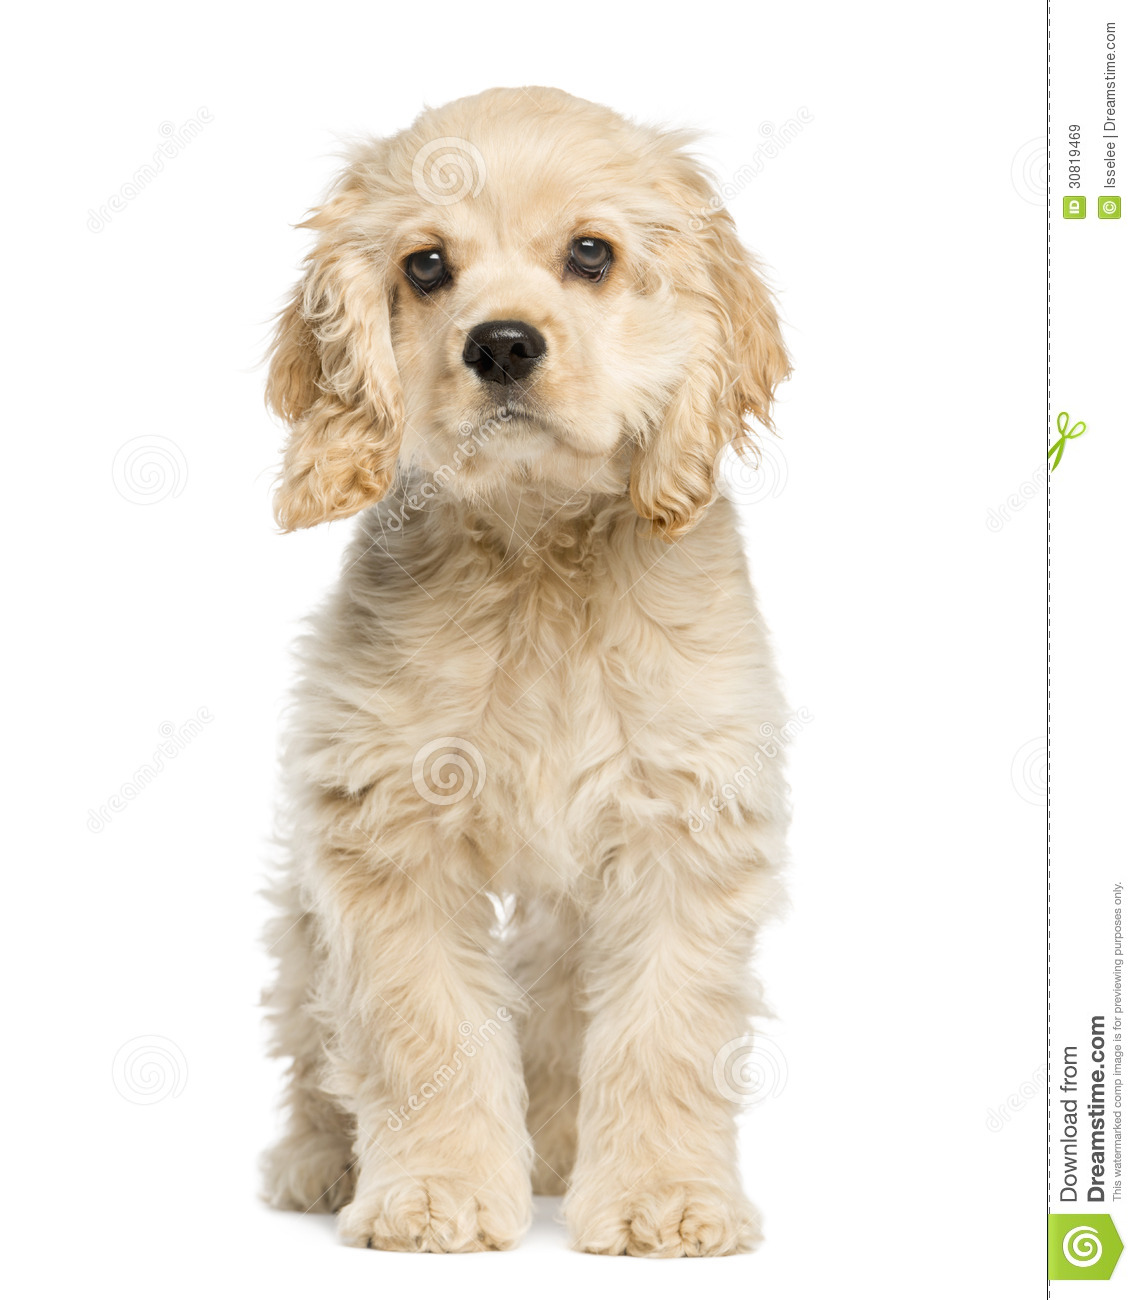 Royalty Free Stock Images: American cocker spaniel puppy sitting and ...